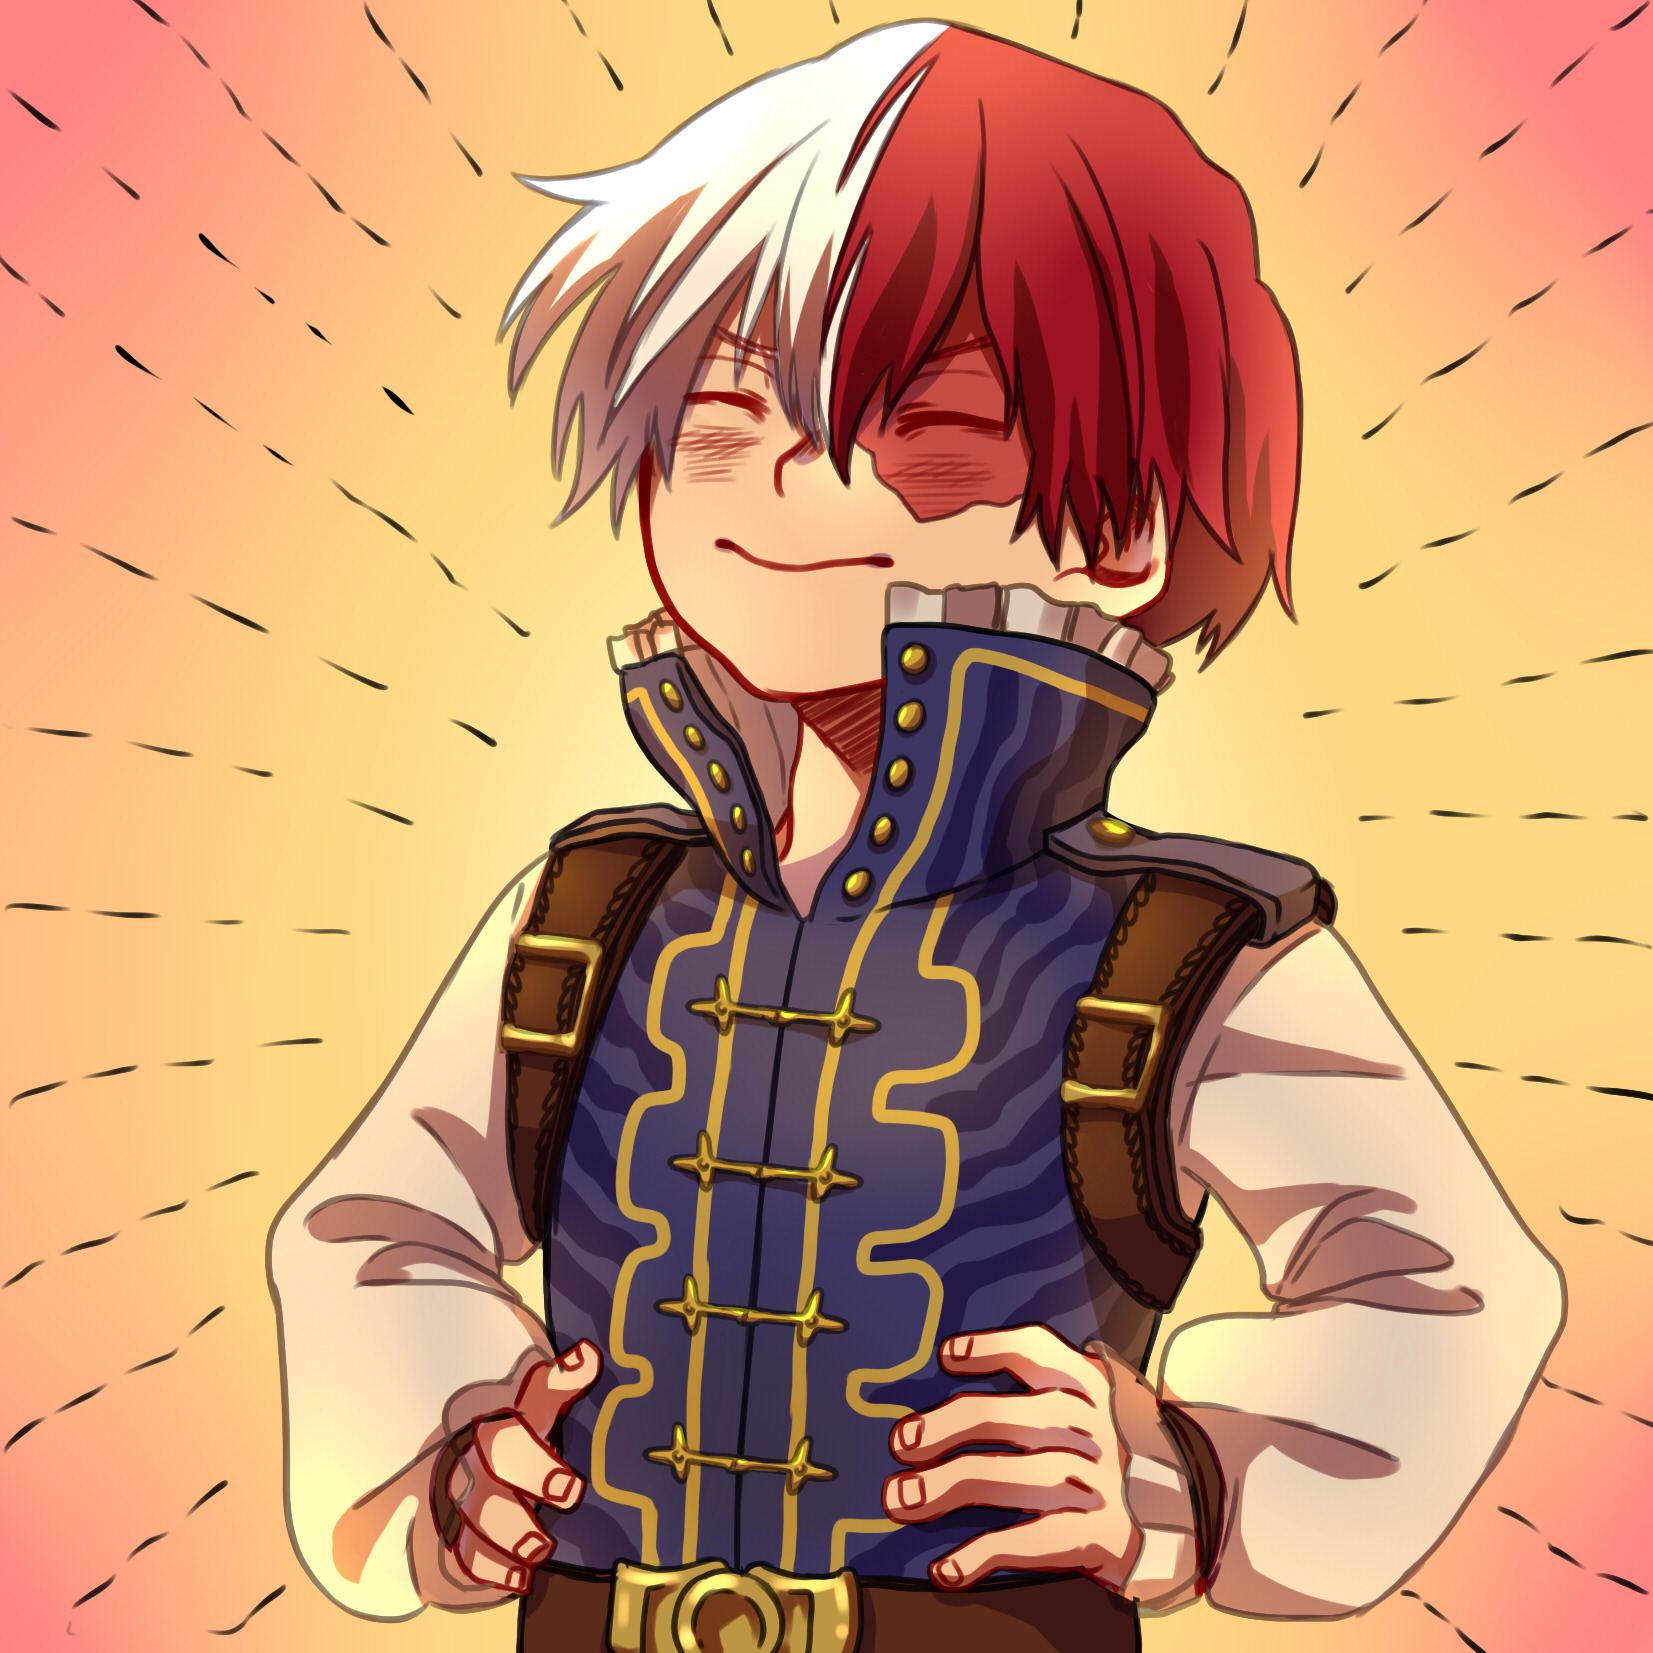 Shoto Todoroki | Boku no Hero Academia Wiki | FANDOM powered by Wikia